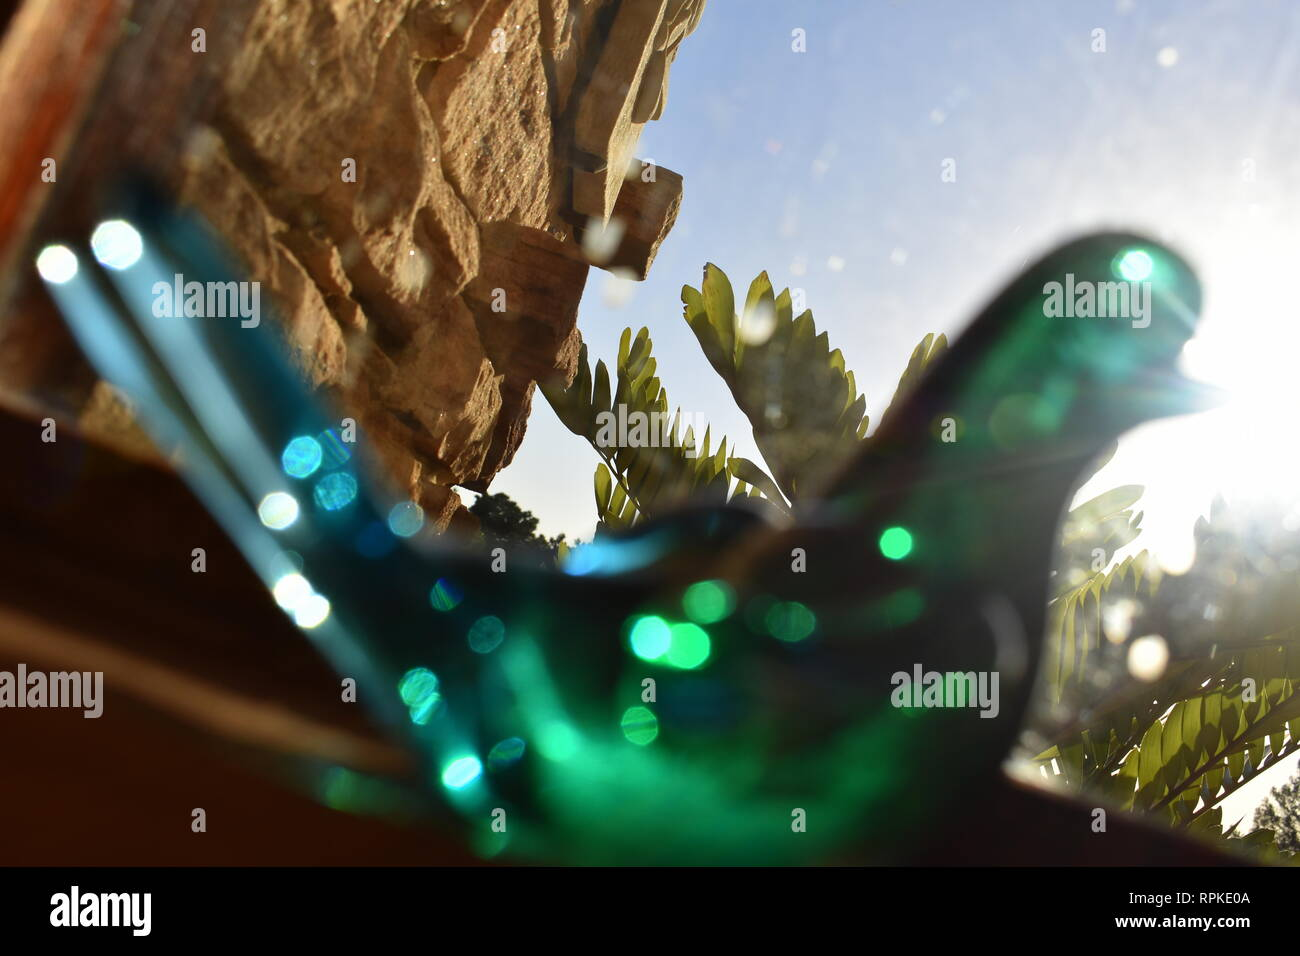 An immobile glass bird looks out a window into the sun and empty blue sky - Stock Image